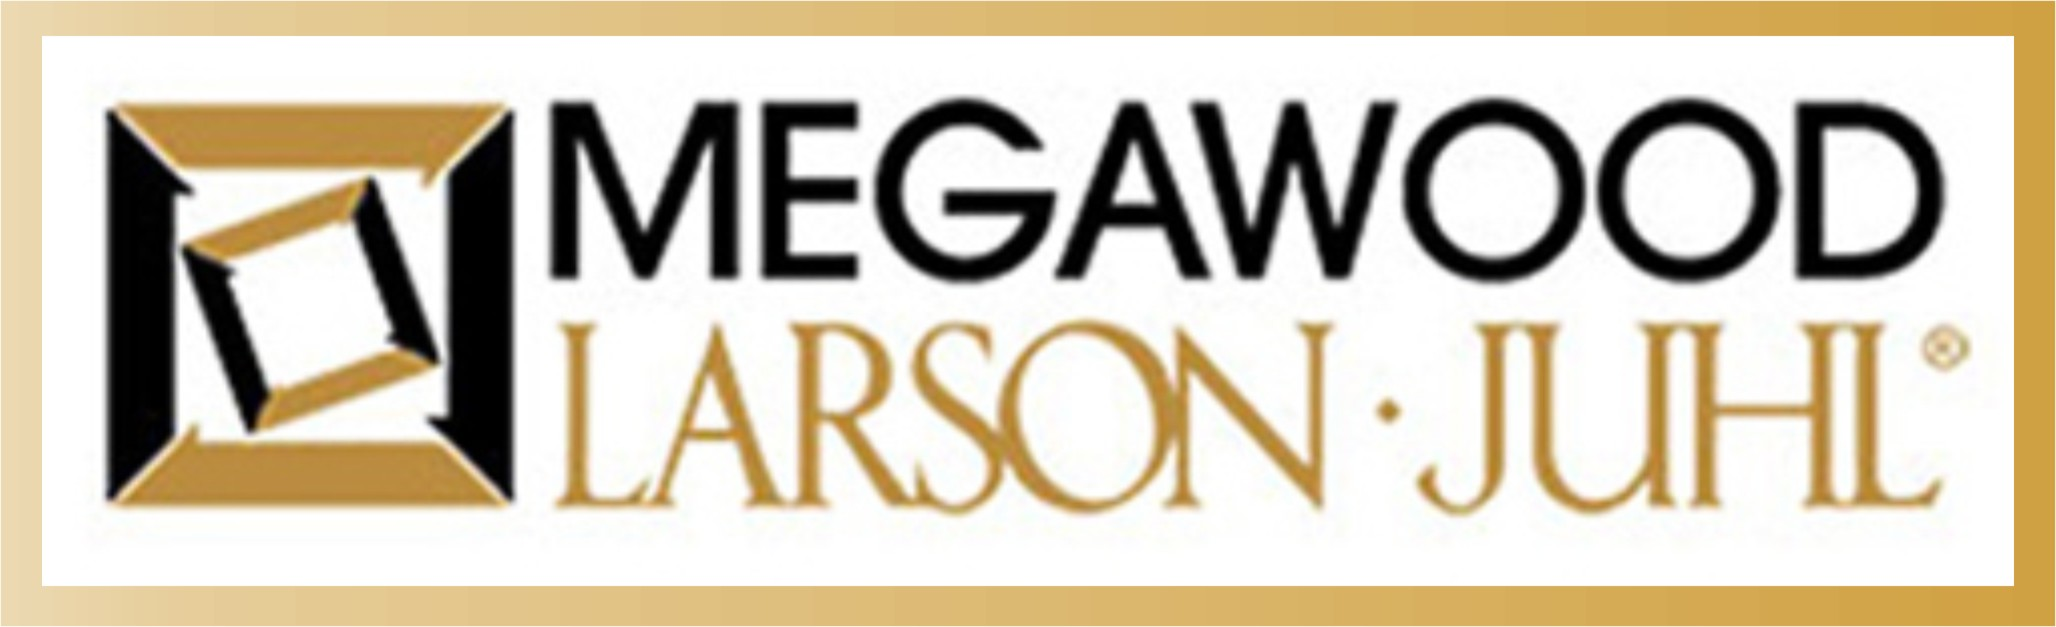 Megawood Jobs Picture Framing Sunshine Coast Framing And Awards